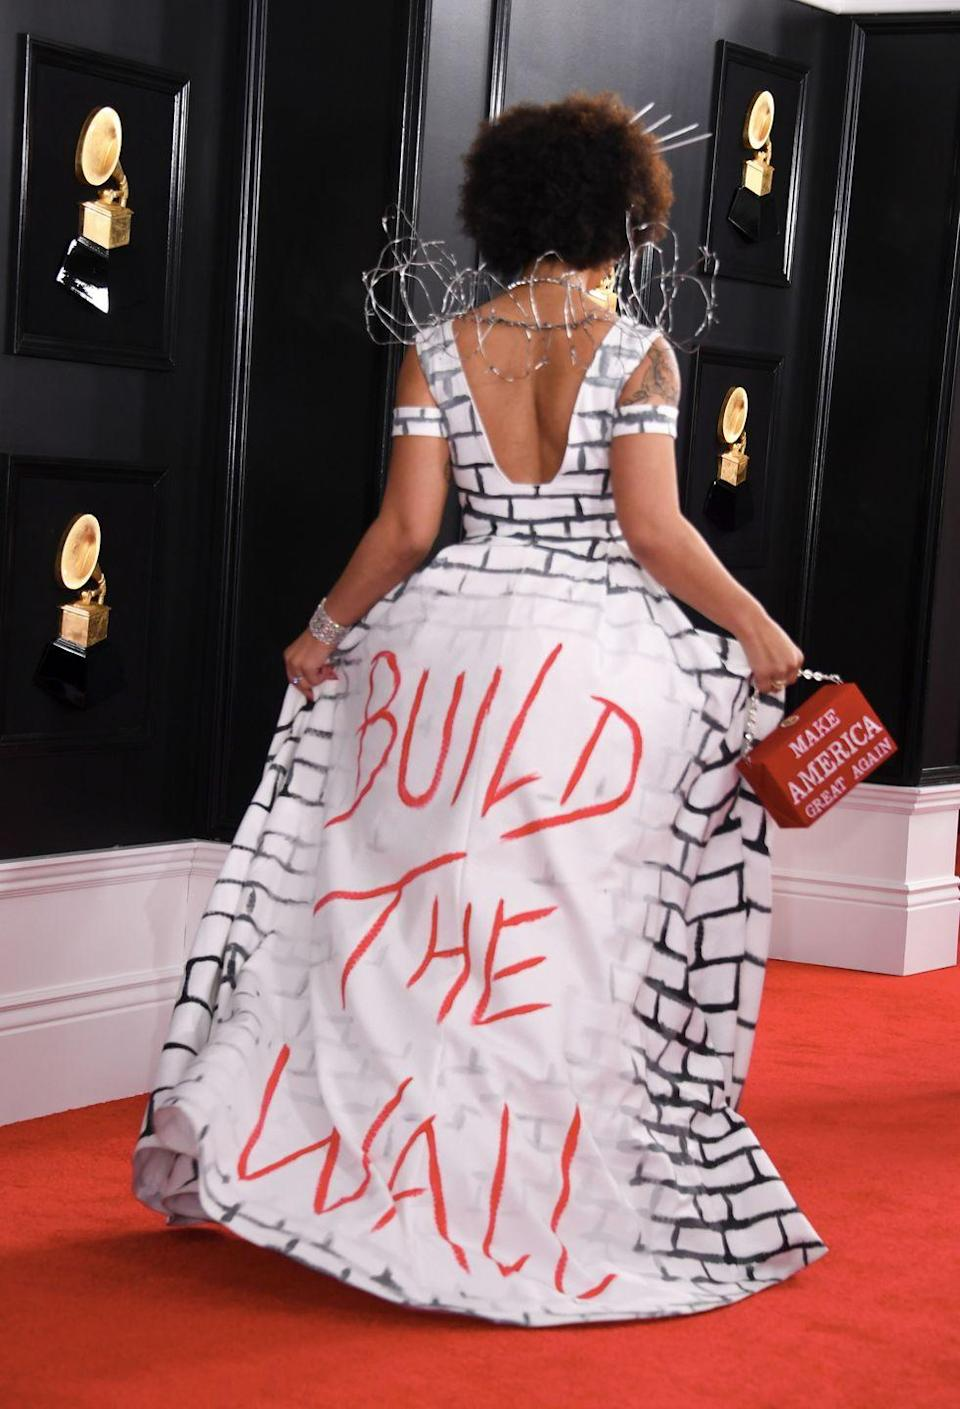 """<p>Singer Joy Villa has chosen some unusually political outfits for her red carpet appearances, including this <a href=""""https://www.insider.com/build-the-wall-dress-grammys-2019-2"""" rel=""""nofollow noopener"""" target=""""_blank"""" data-ylk=""""slk:&quot;Build the Wall&quot; dress she wore to the 2019 Grammys"""" class=""""link rapid-noclick-resp"""">""""Build the Wall"""" dress she wore to the 2019 Grammys</a>, as a message of support for then-President Trump's plan to build a wall on the US-Mexico border. </p>"""